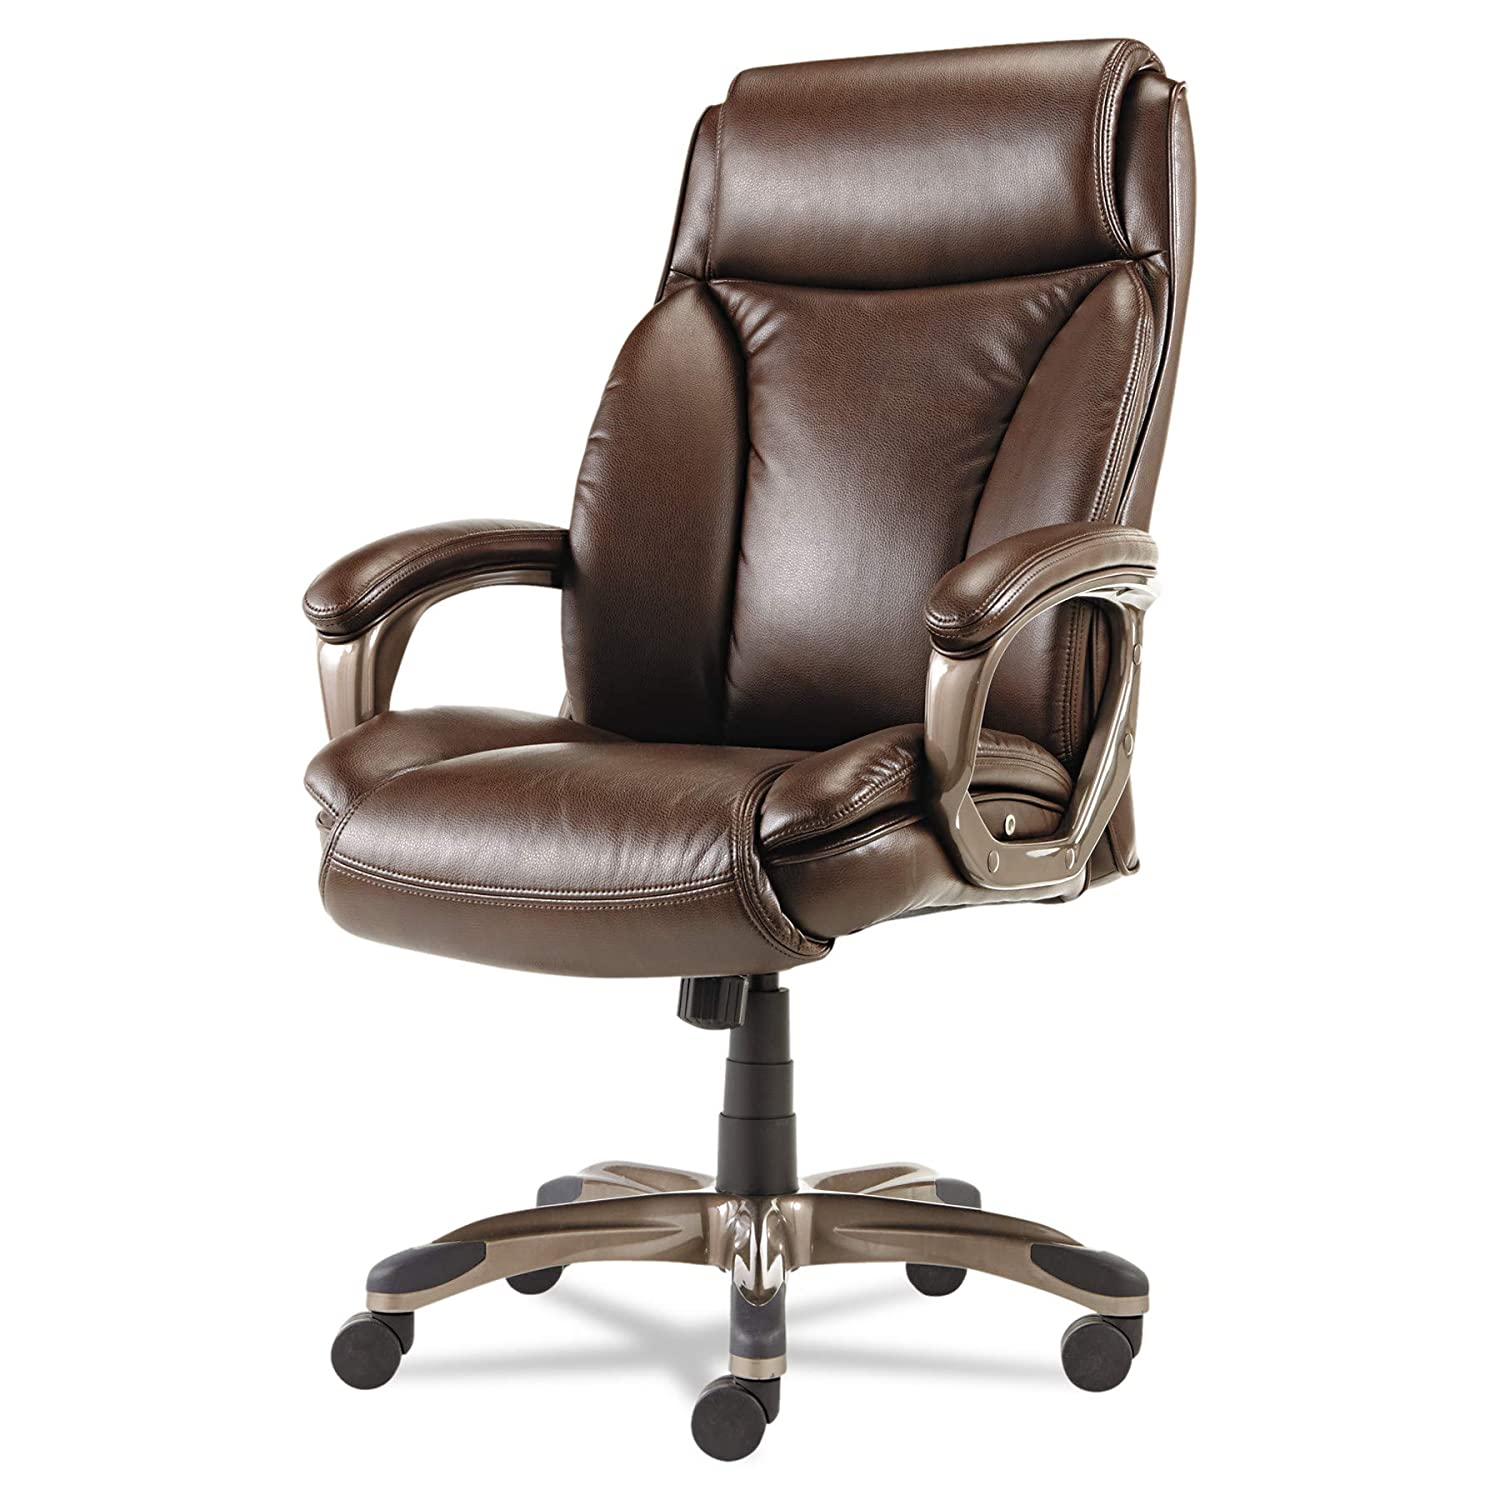 Amazon.com: Alera Veon Series Executive High Back Leather Chair With Coil  Spring Cushioning, Brown: Kitchen U0026 Dining